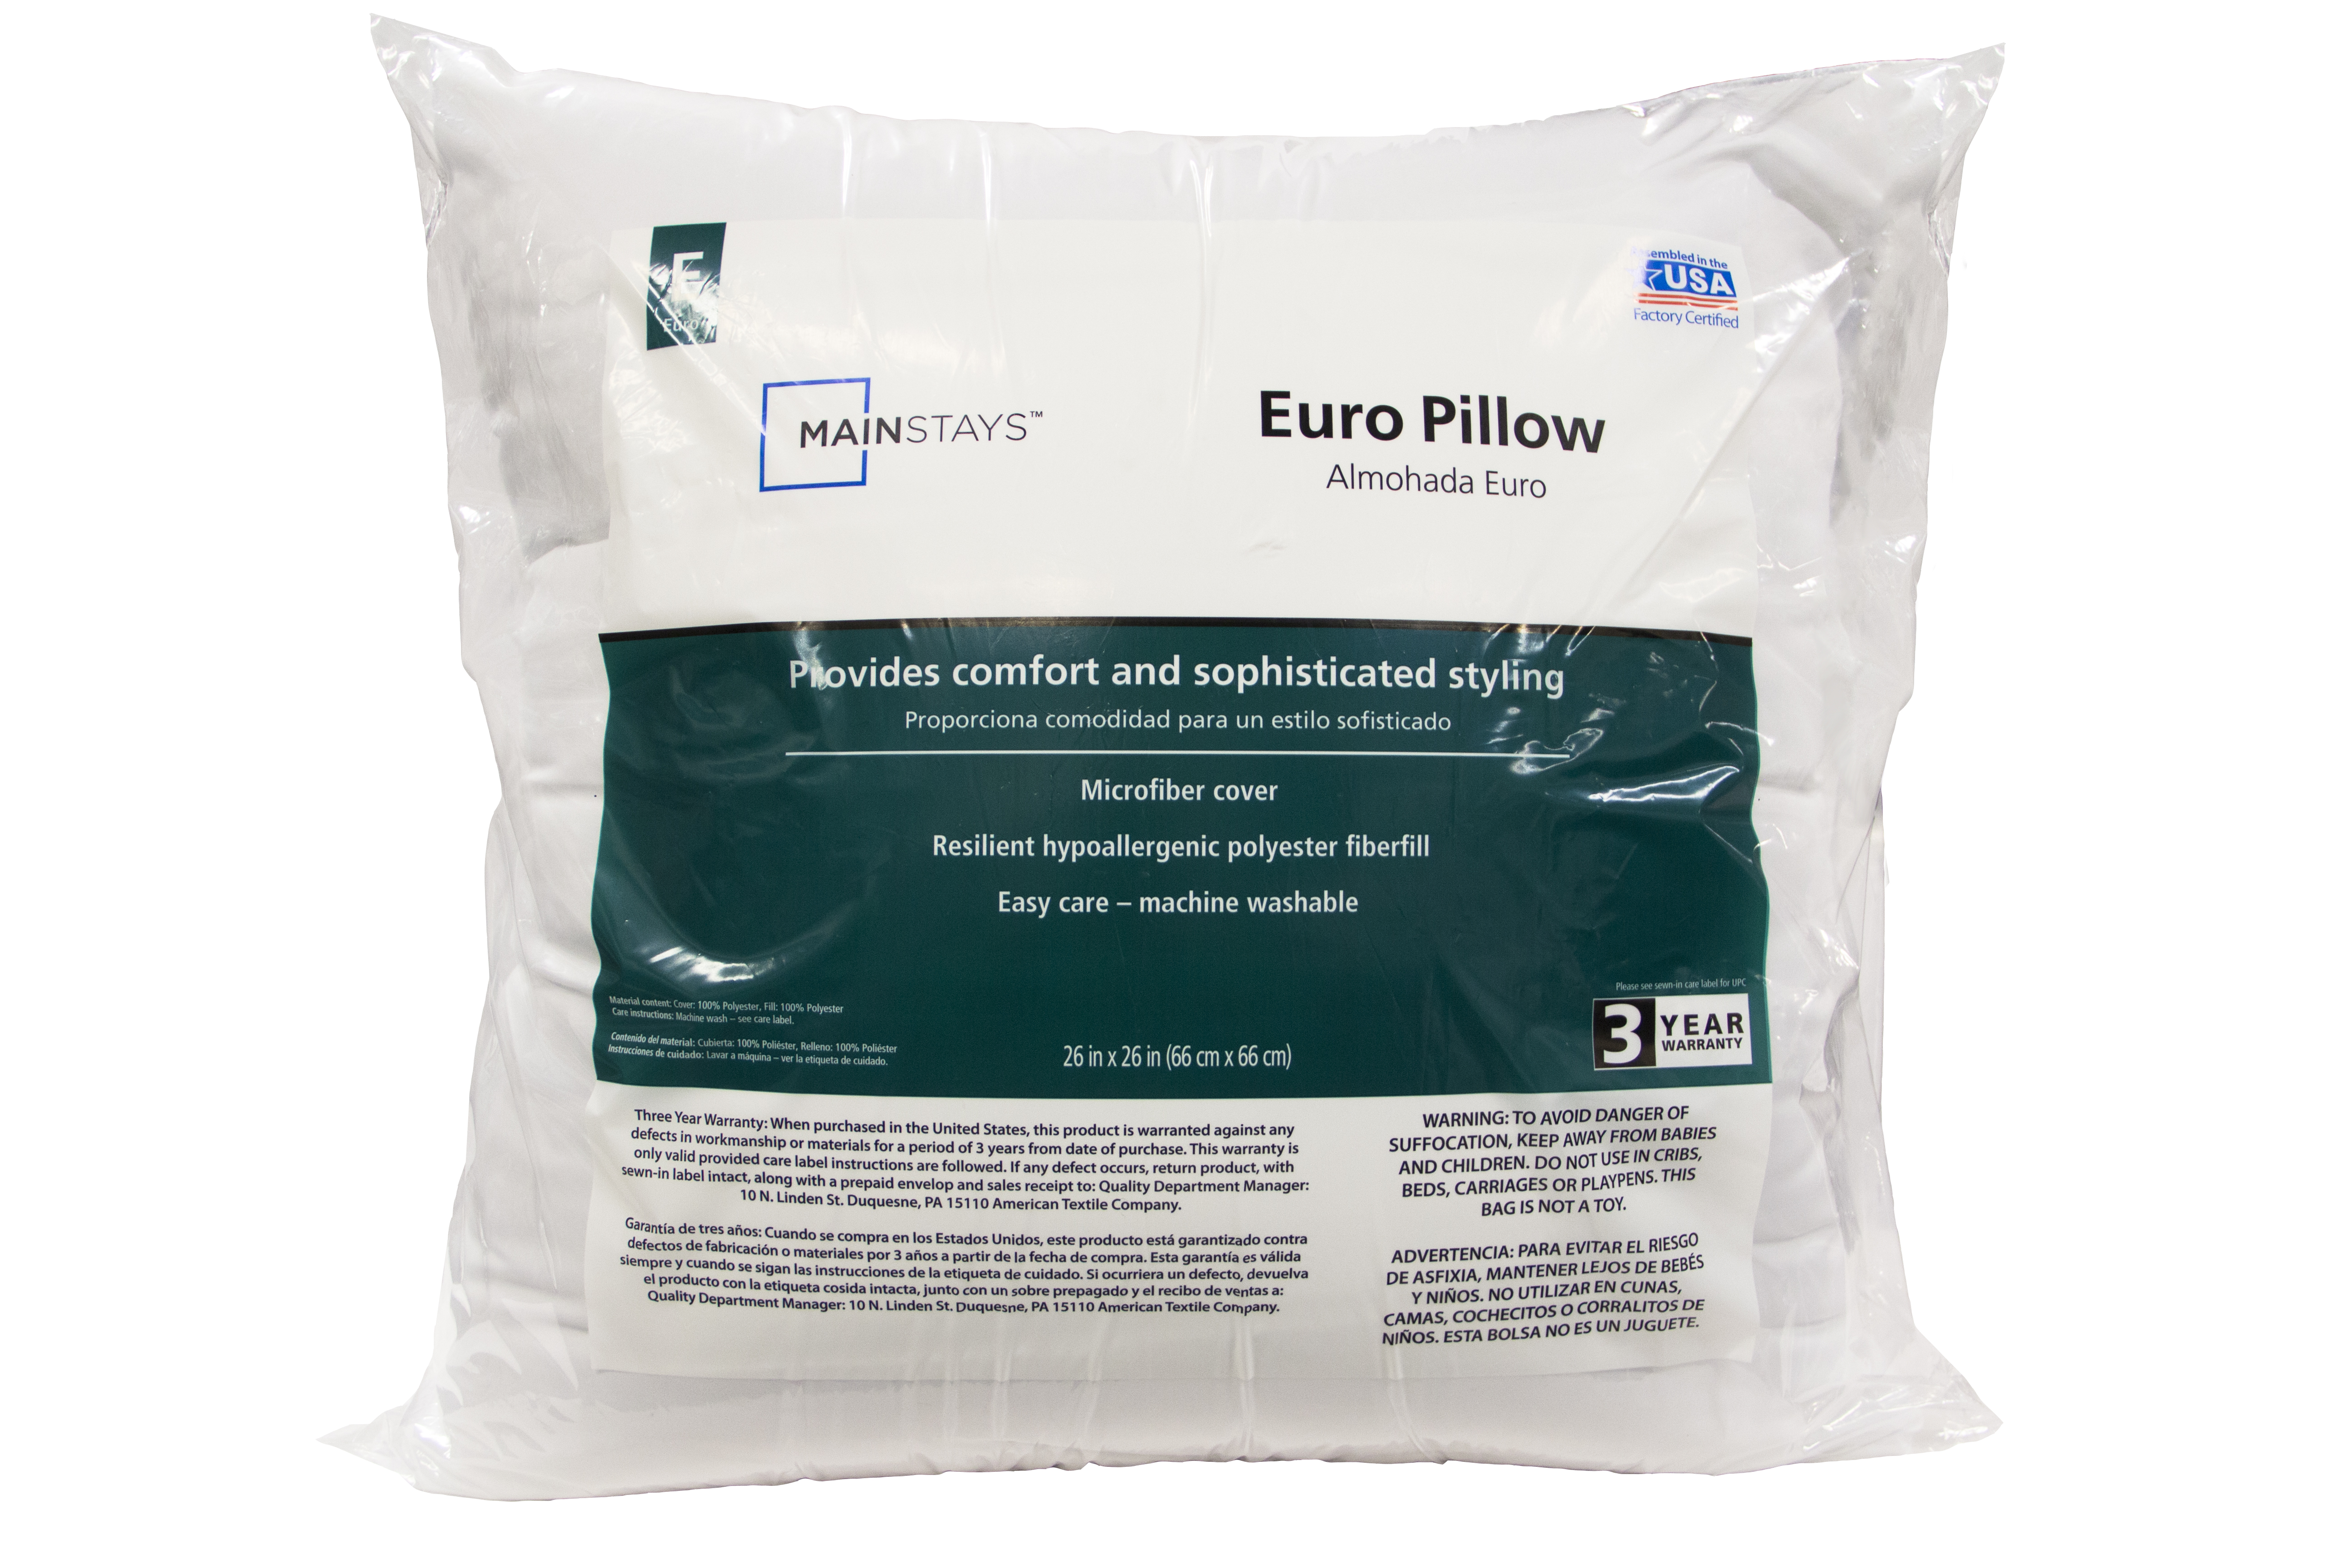 Mainstays Euro Pillow, 3-Year Warranty, Machine Washable (26 x 26) by American Textile Company